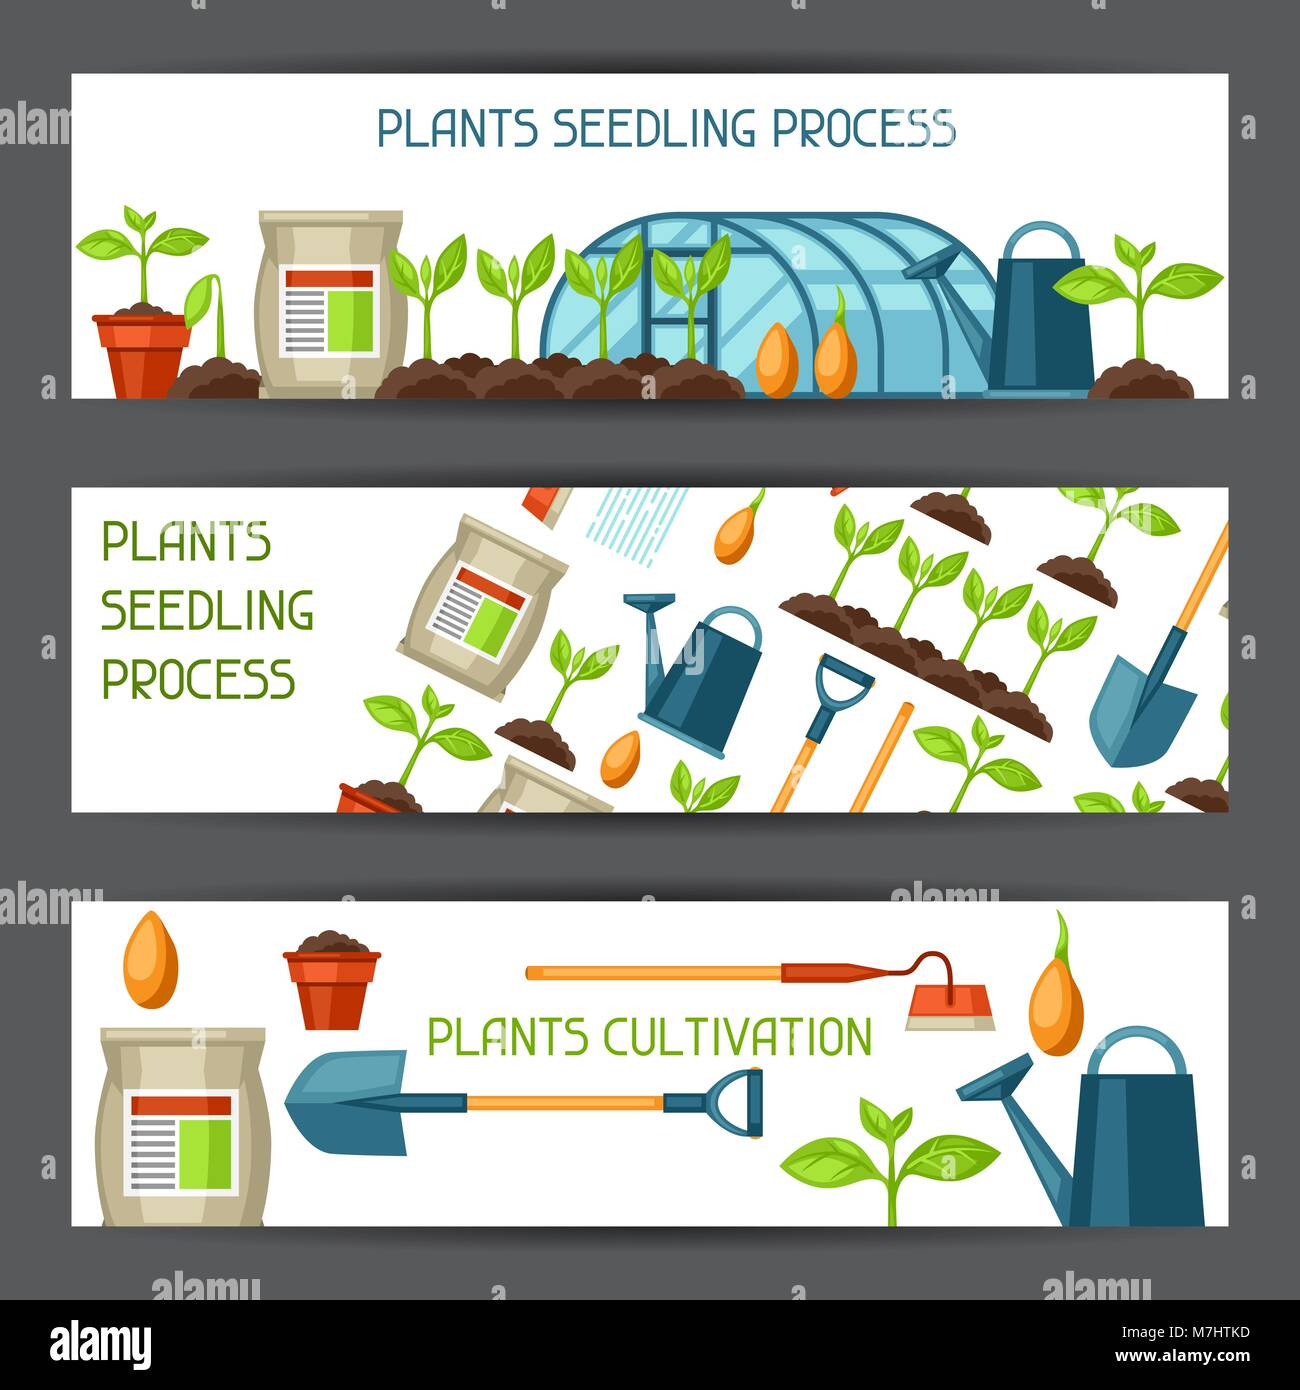 Banners with agriculture objects. Instruments for cultivation, plants seedling process, stage plant growth, fertilizers - Stock Vector